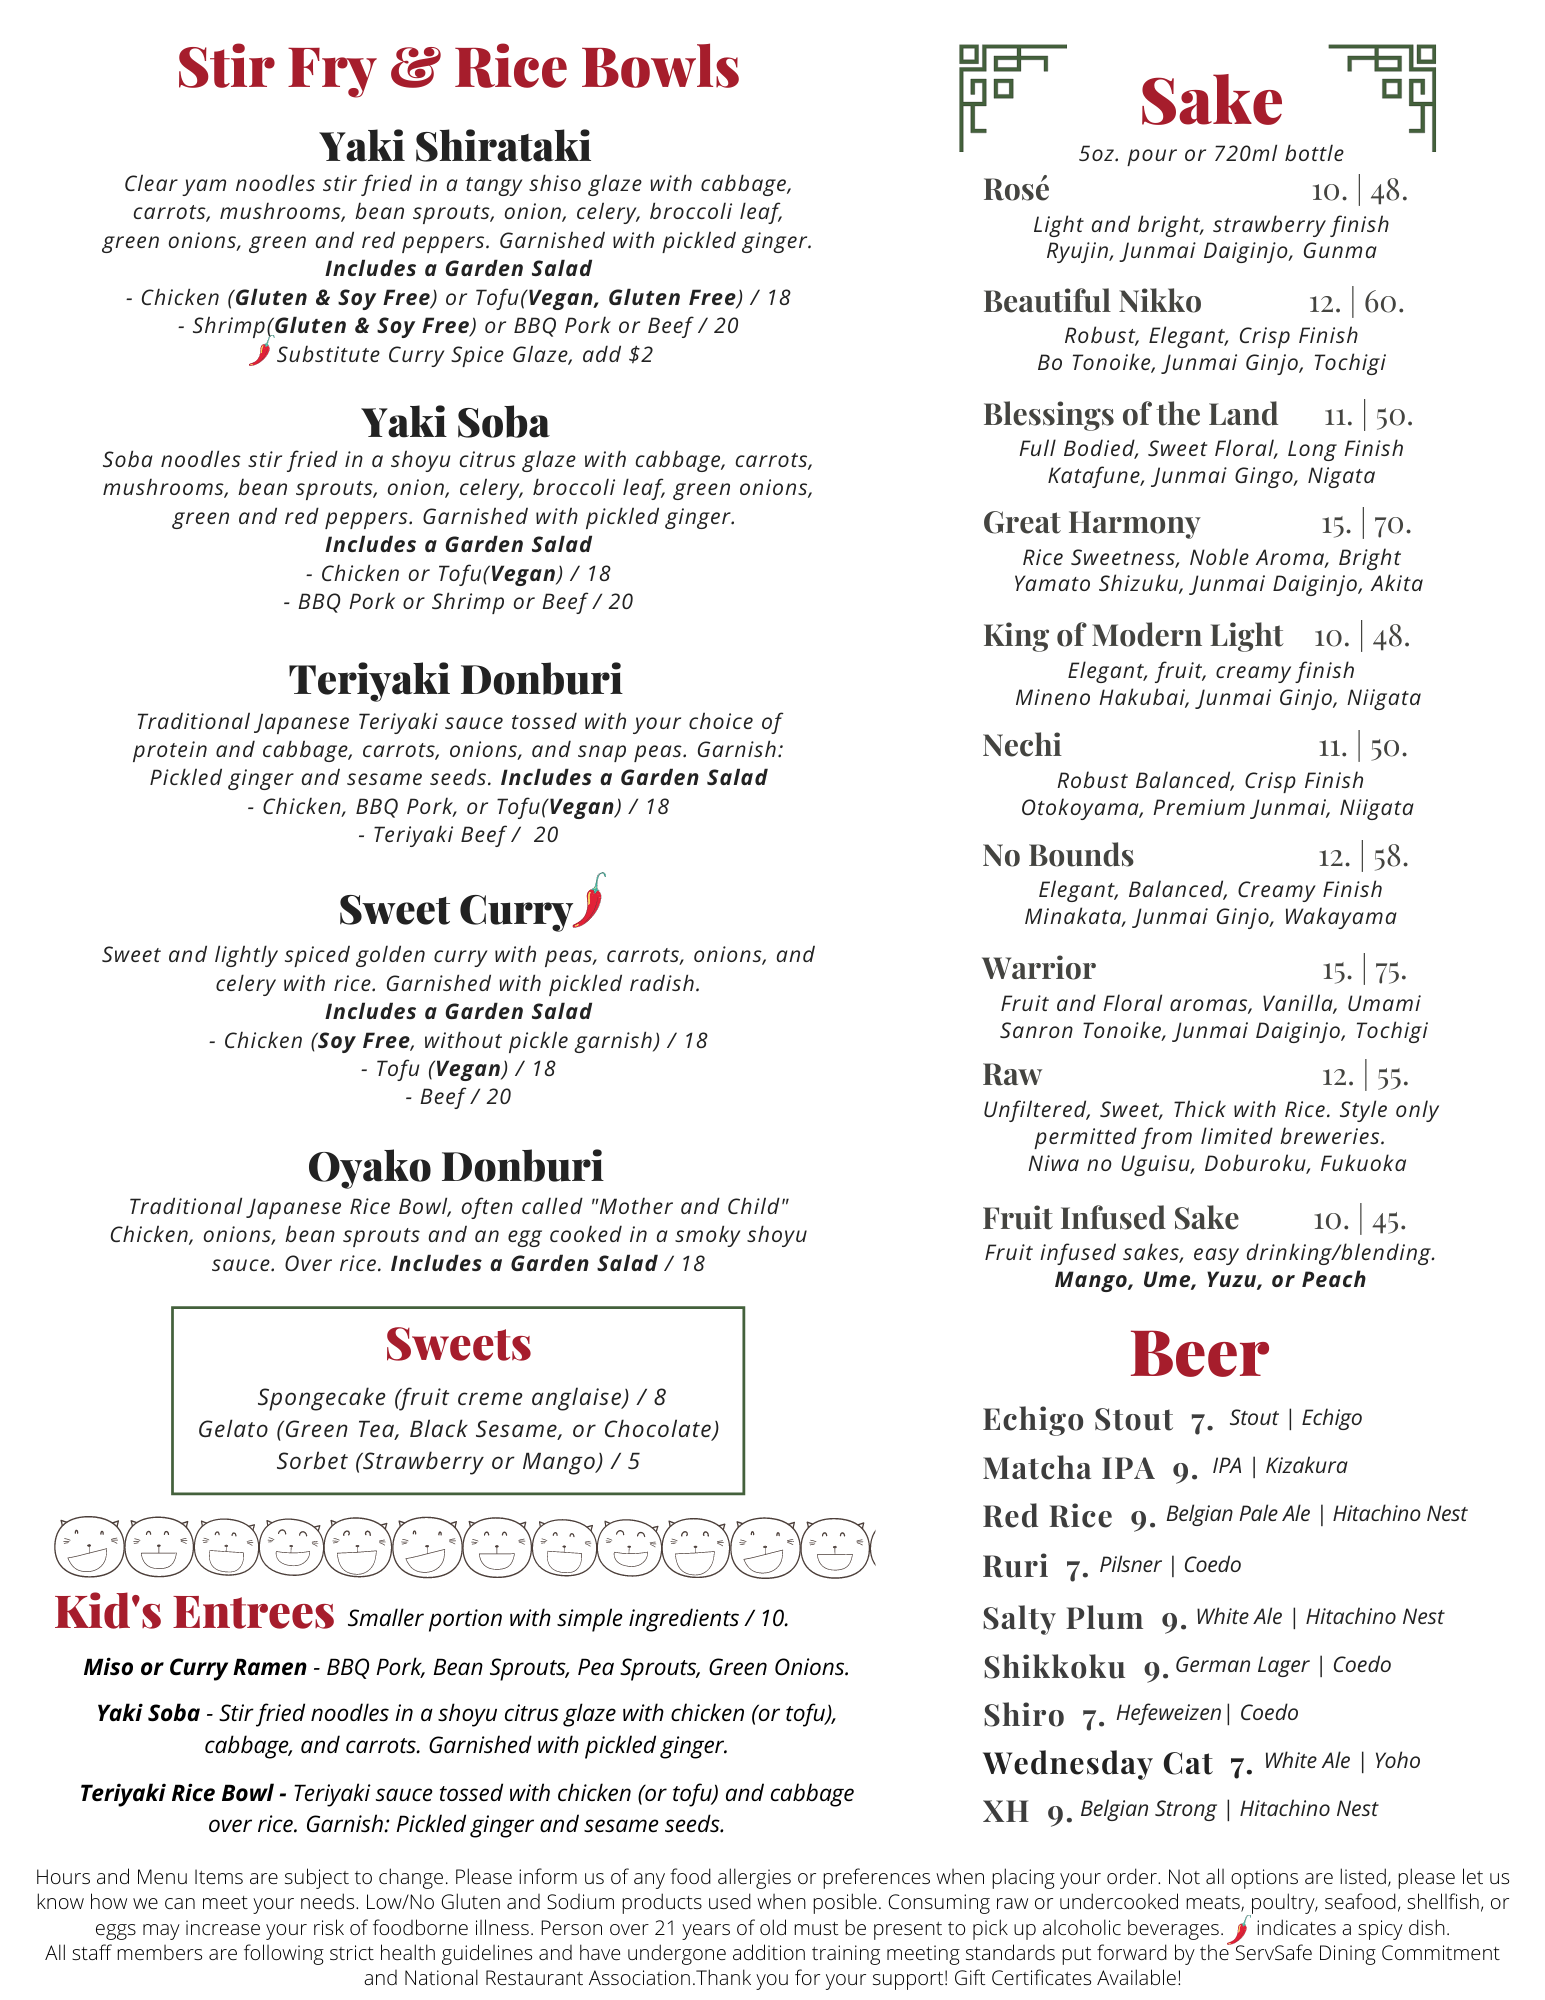 the-taste-of-tea-menu-03012021-pg2.png